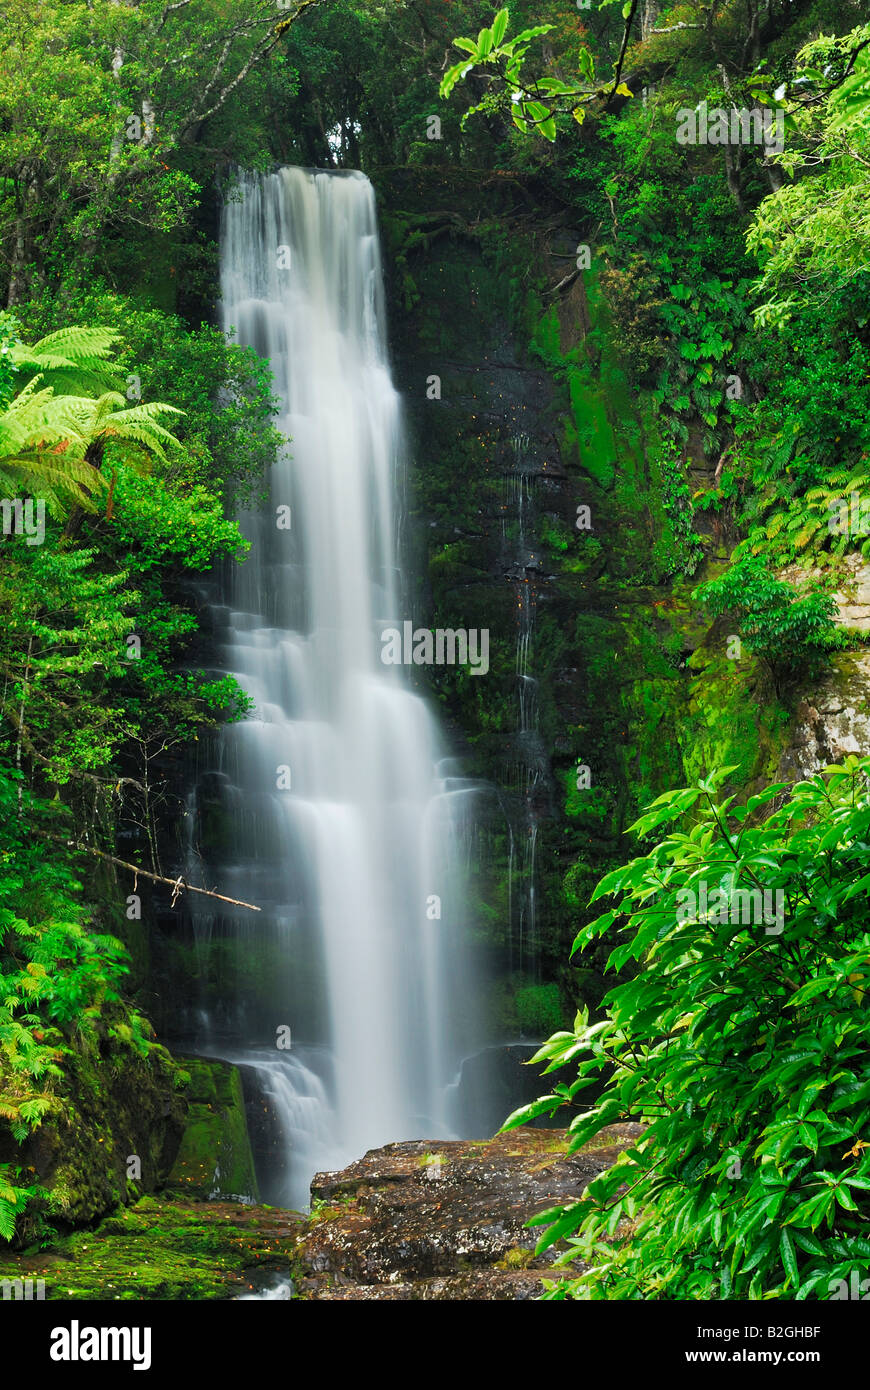 mac lean falls river mountain torrent cascade forest jungle south island new zealand - Stock Image